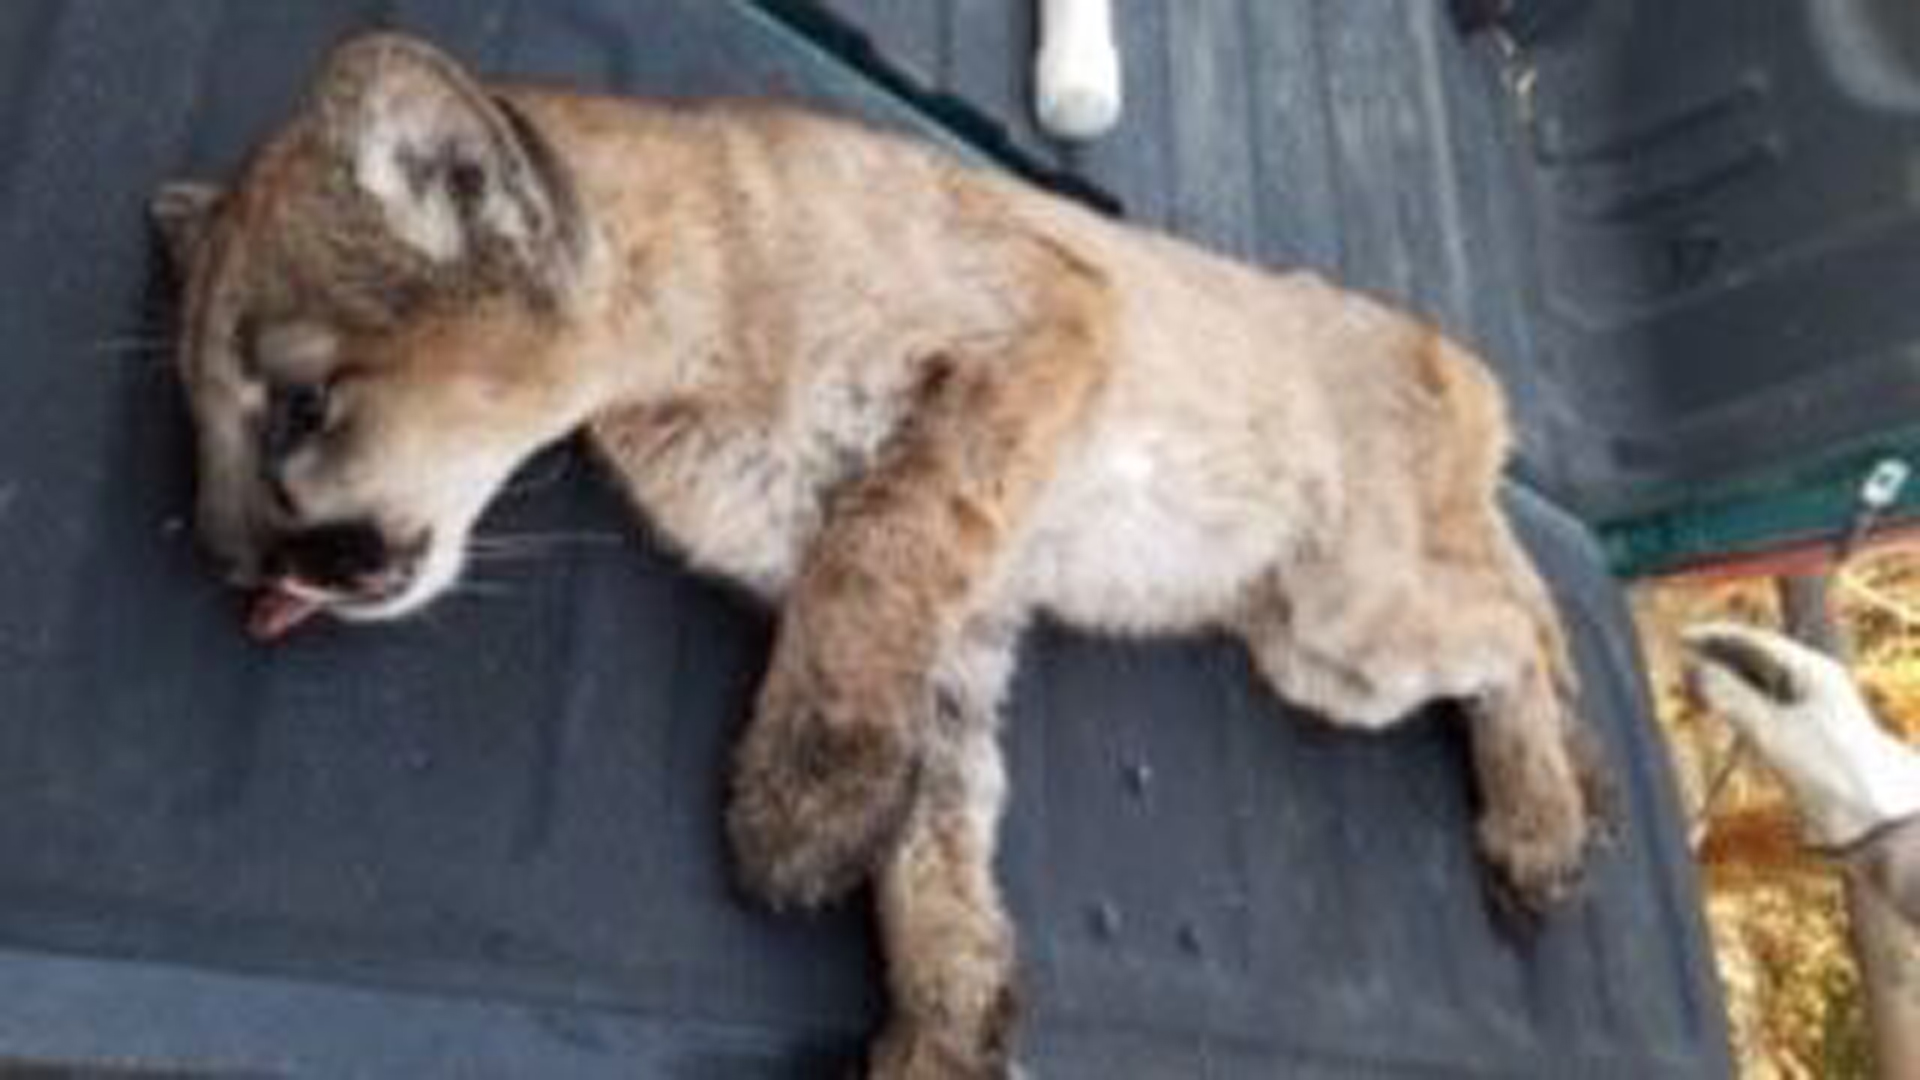 A mountain lion that was found injured in the Thomas Fire burn area was rescued on Dec. 22, 2017. (Courtesy: City of Santa Paula)